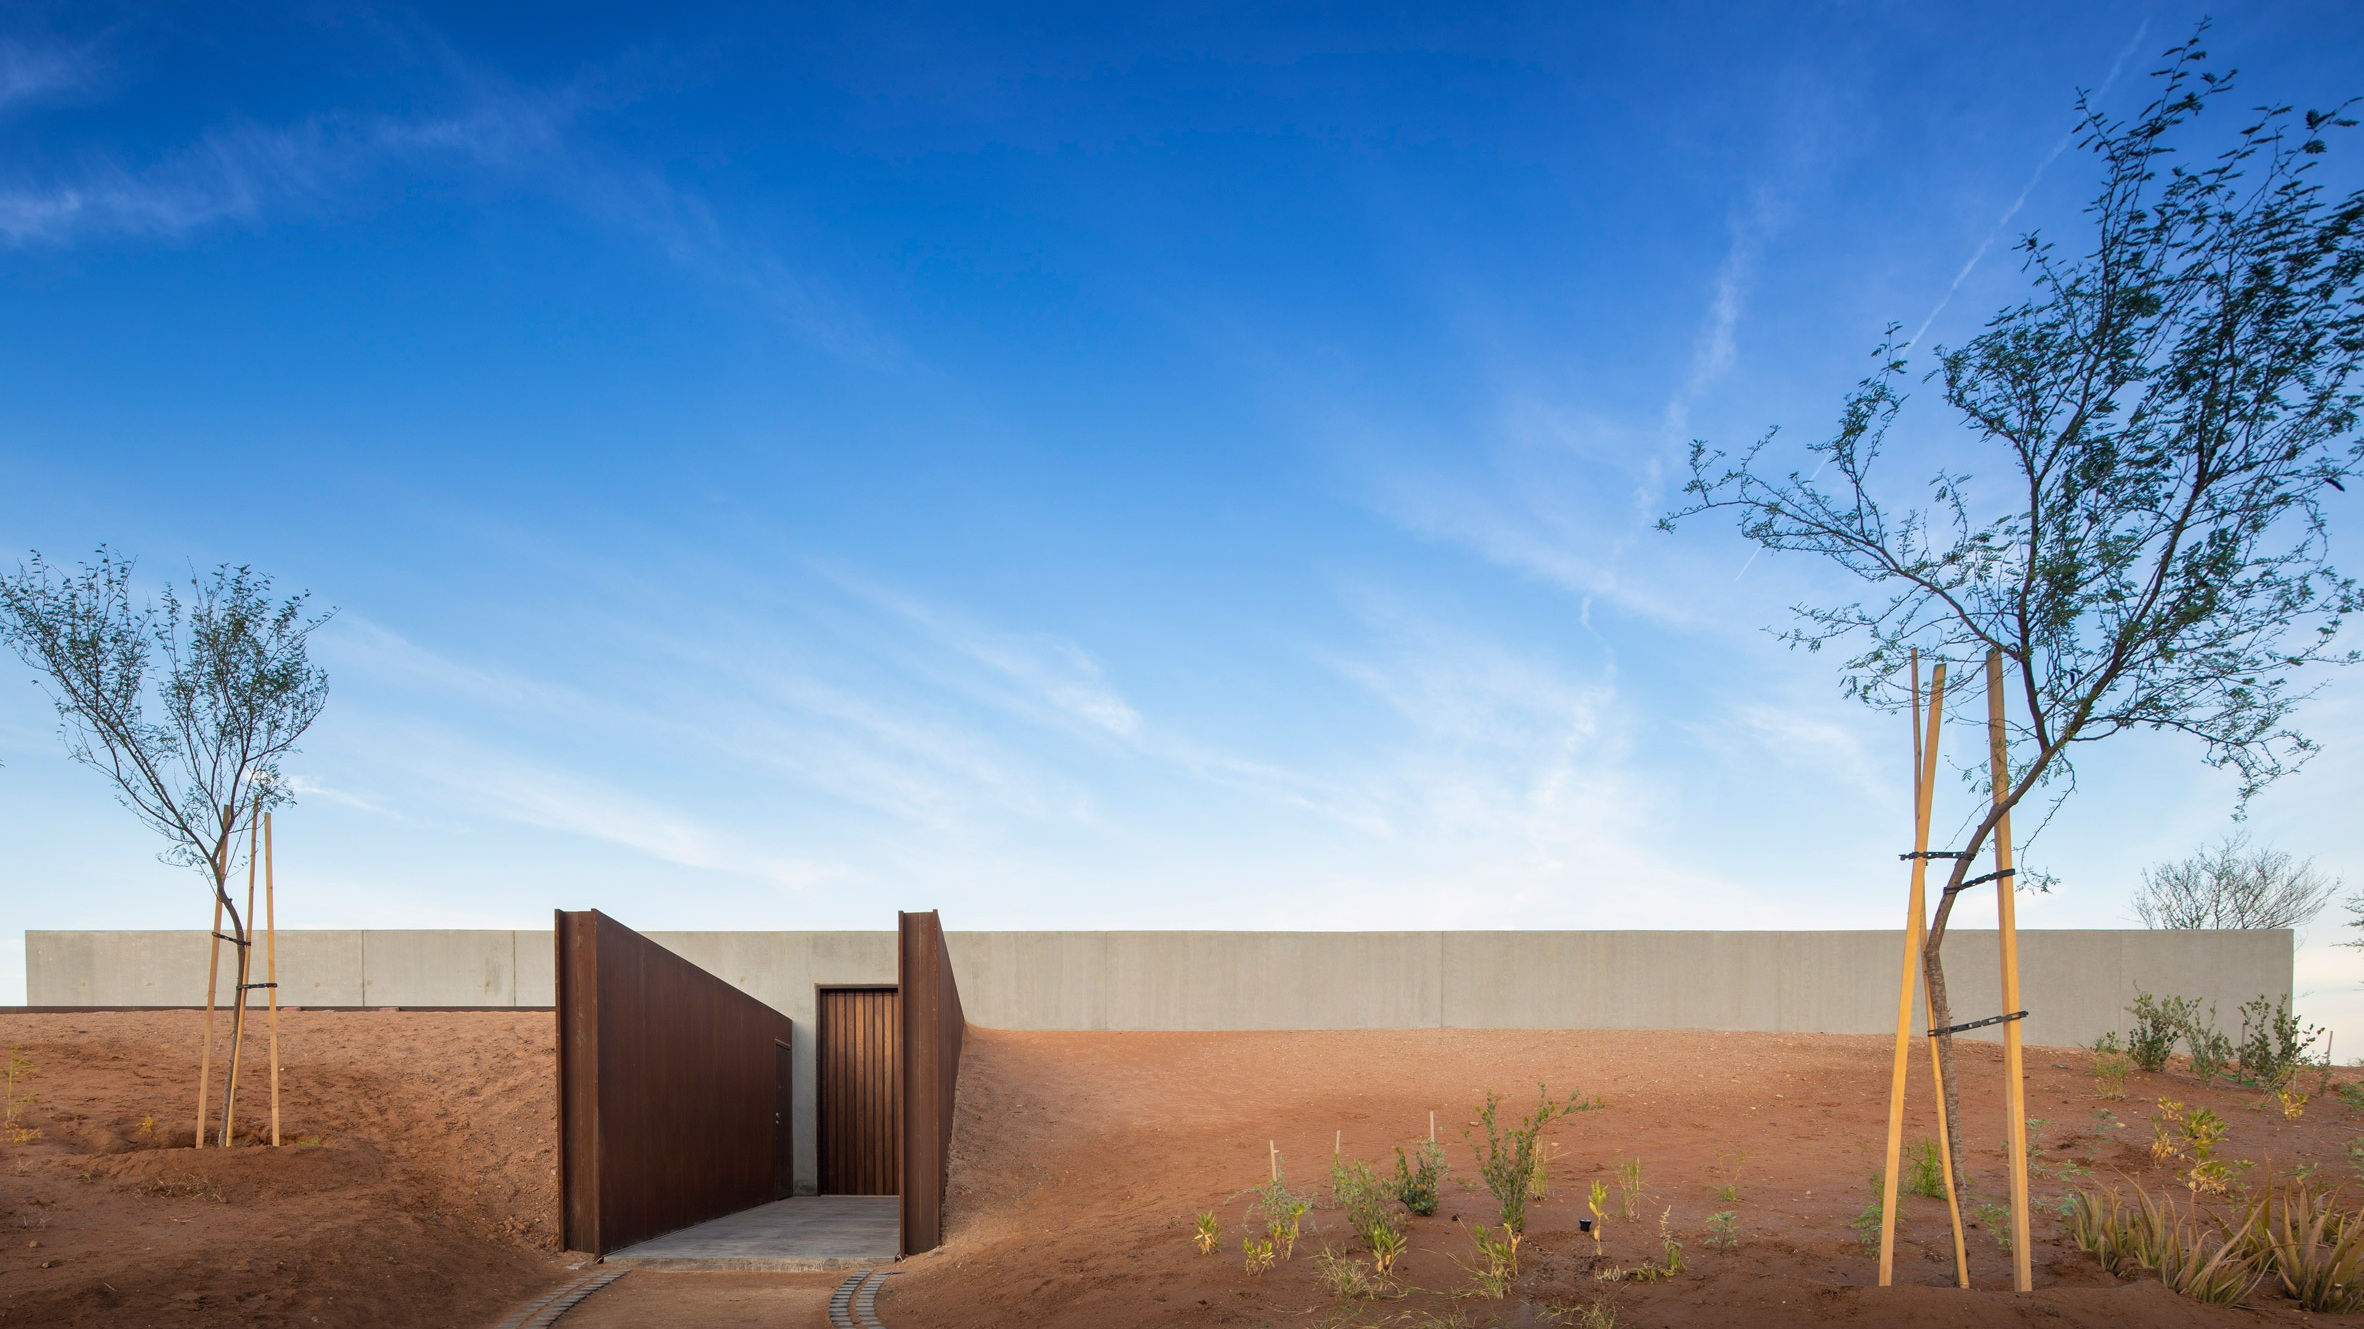 al-faya-lodge-anarchitects-architecture-photography-fernando-guerra-_dezeen_2364_col_1.jpg